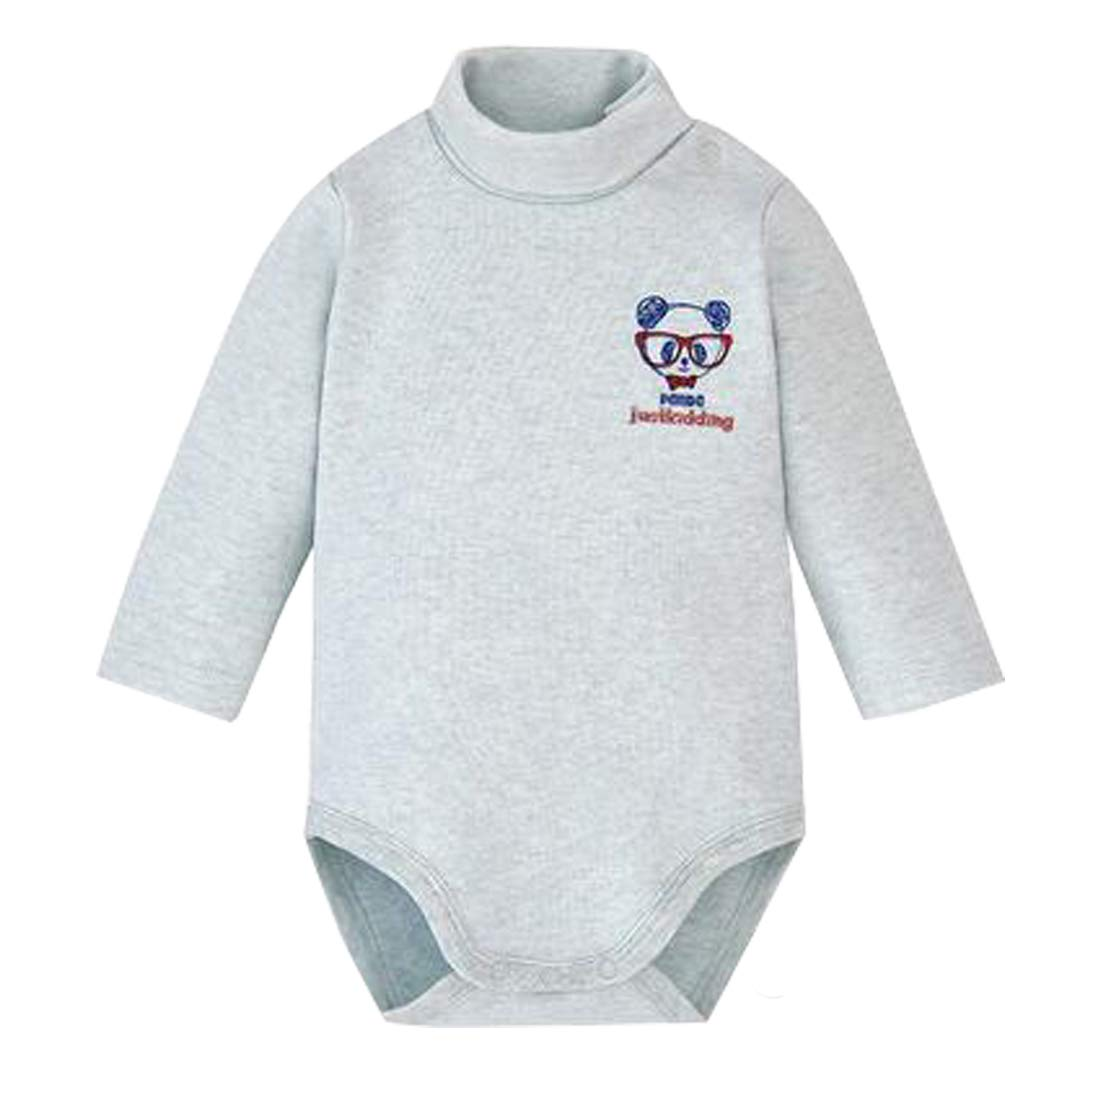 c304577db Amazon.com: Infant Baby Boys Girls Long Sleeves Thermal Onesies Turtle-Neck Bodysuit  Fall Winter Cloths Outfit: Clothing